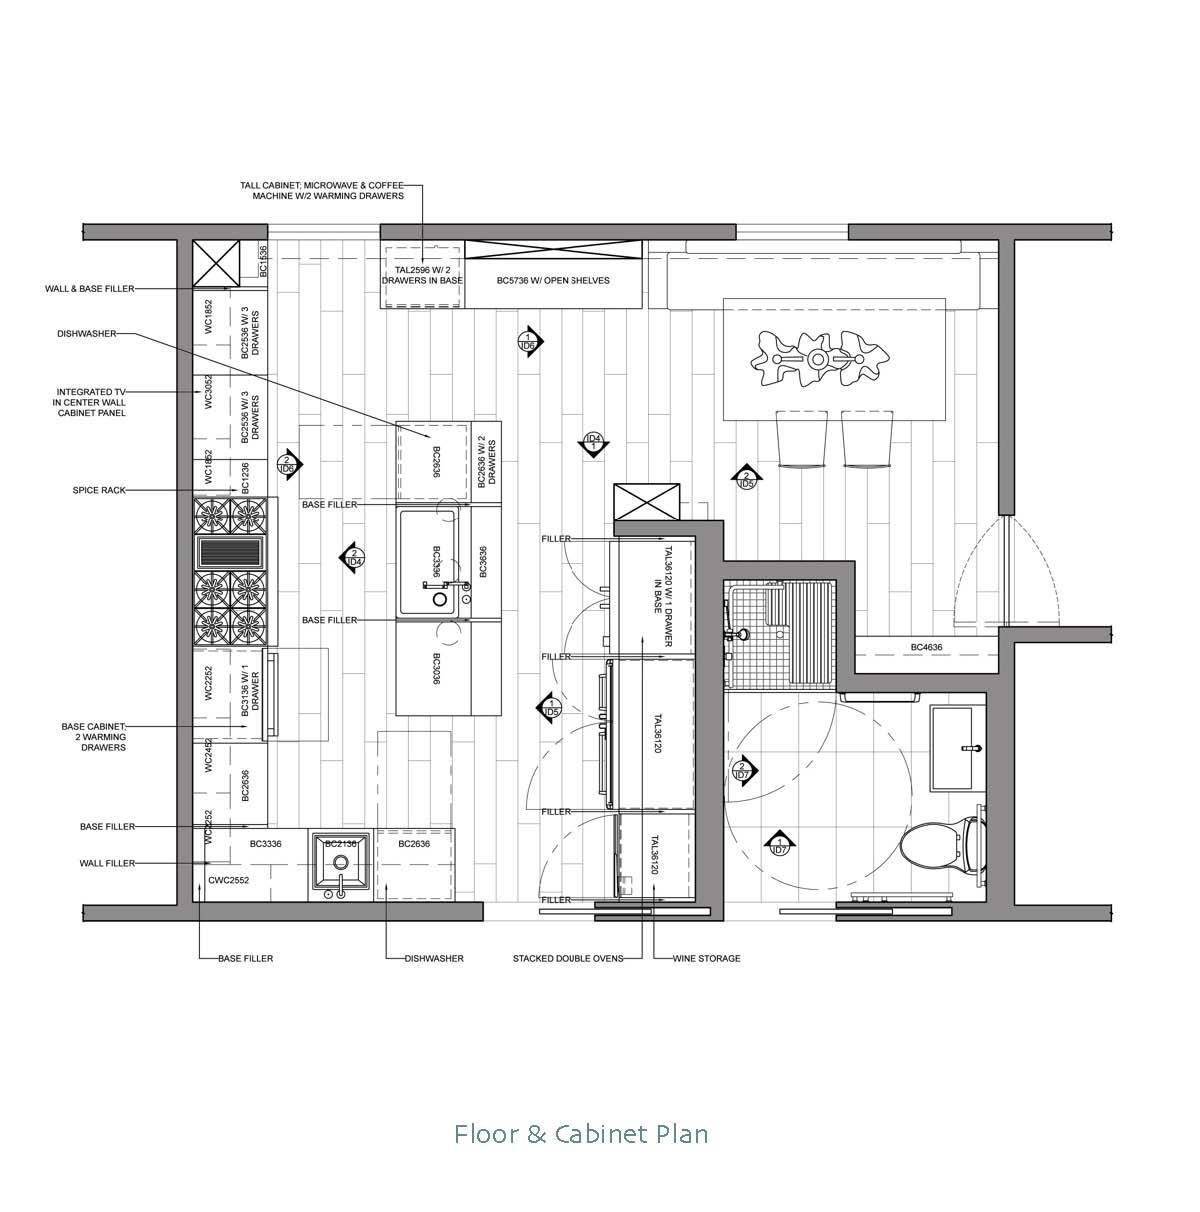 Chef 39 s kitchen natalie gioia archinect for Planning a kitchen layout